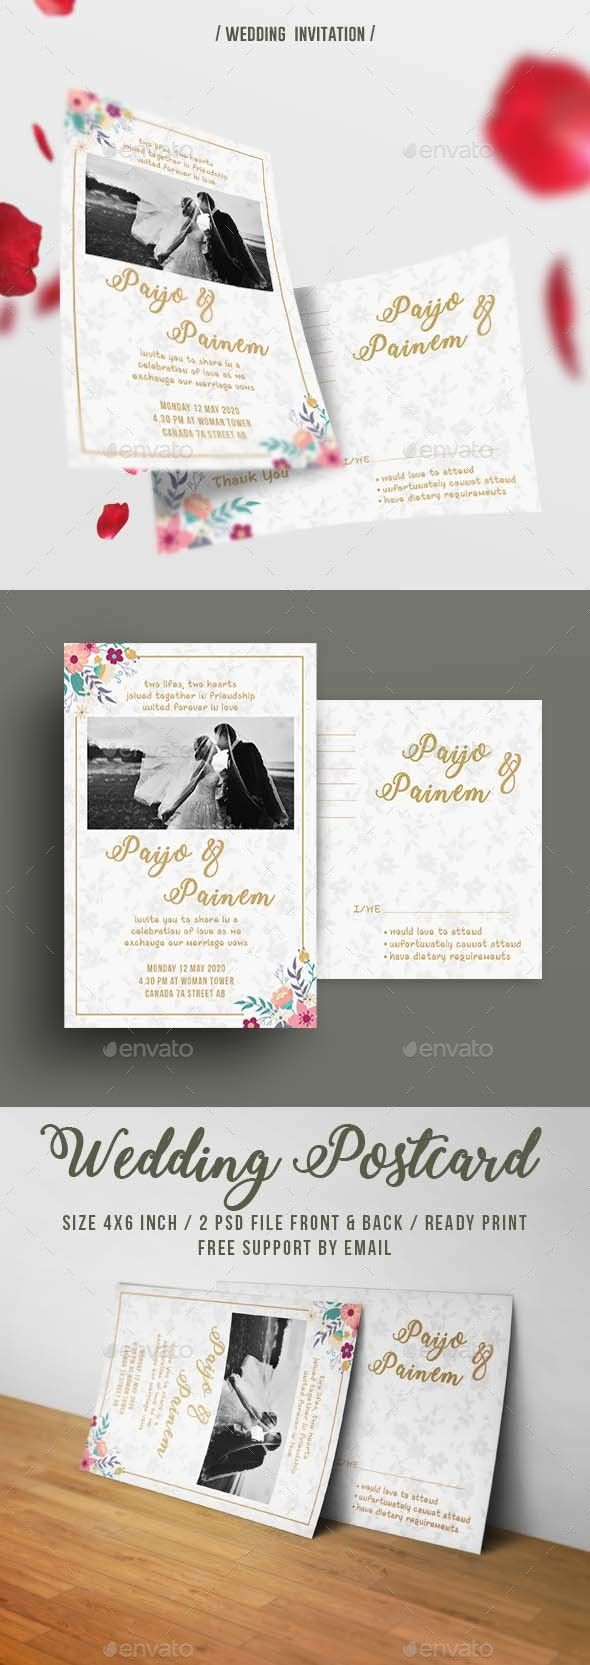 free wedding invitation psd%0A Wedding Invitation